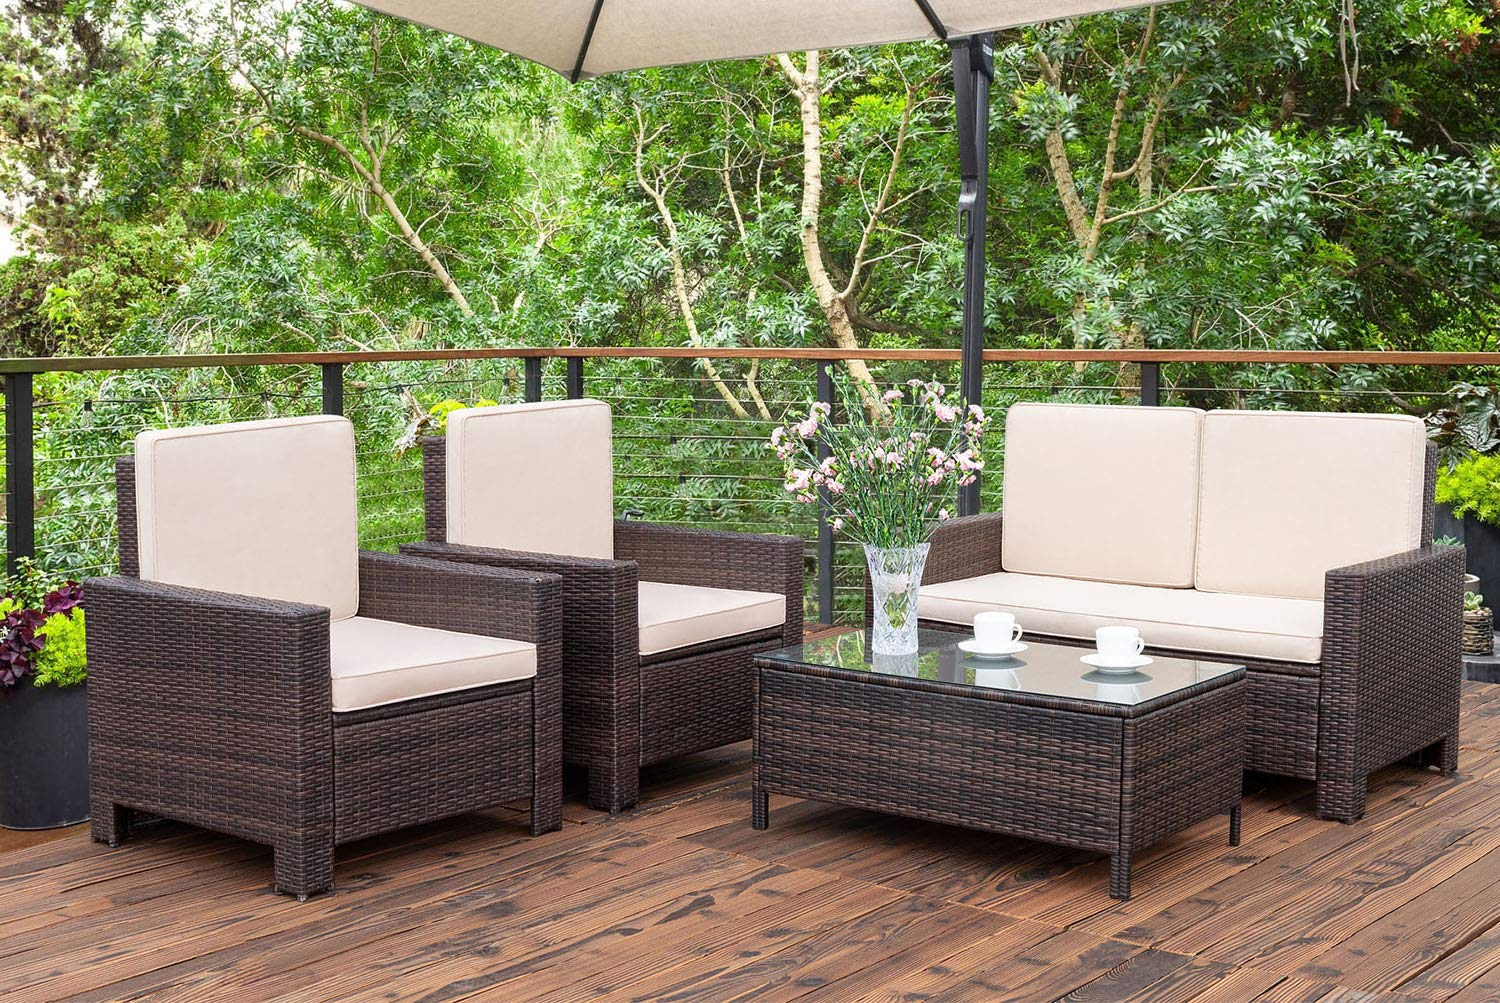 Homall 5 Pieces Outdoor Patio Furniture Sets Rattan Chair Wicker Conversation Sofa Set, Outdoor Indoor Backyard Porch Garden Poolside Balcony Use ...